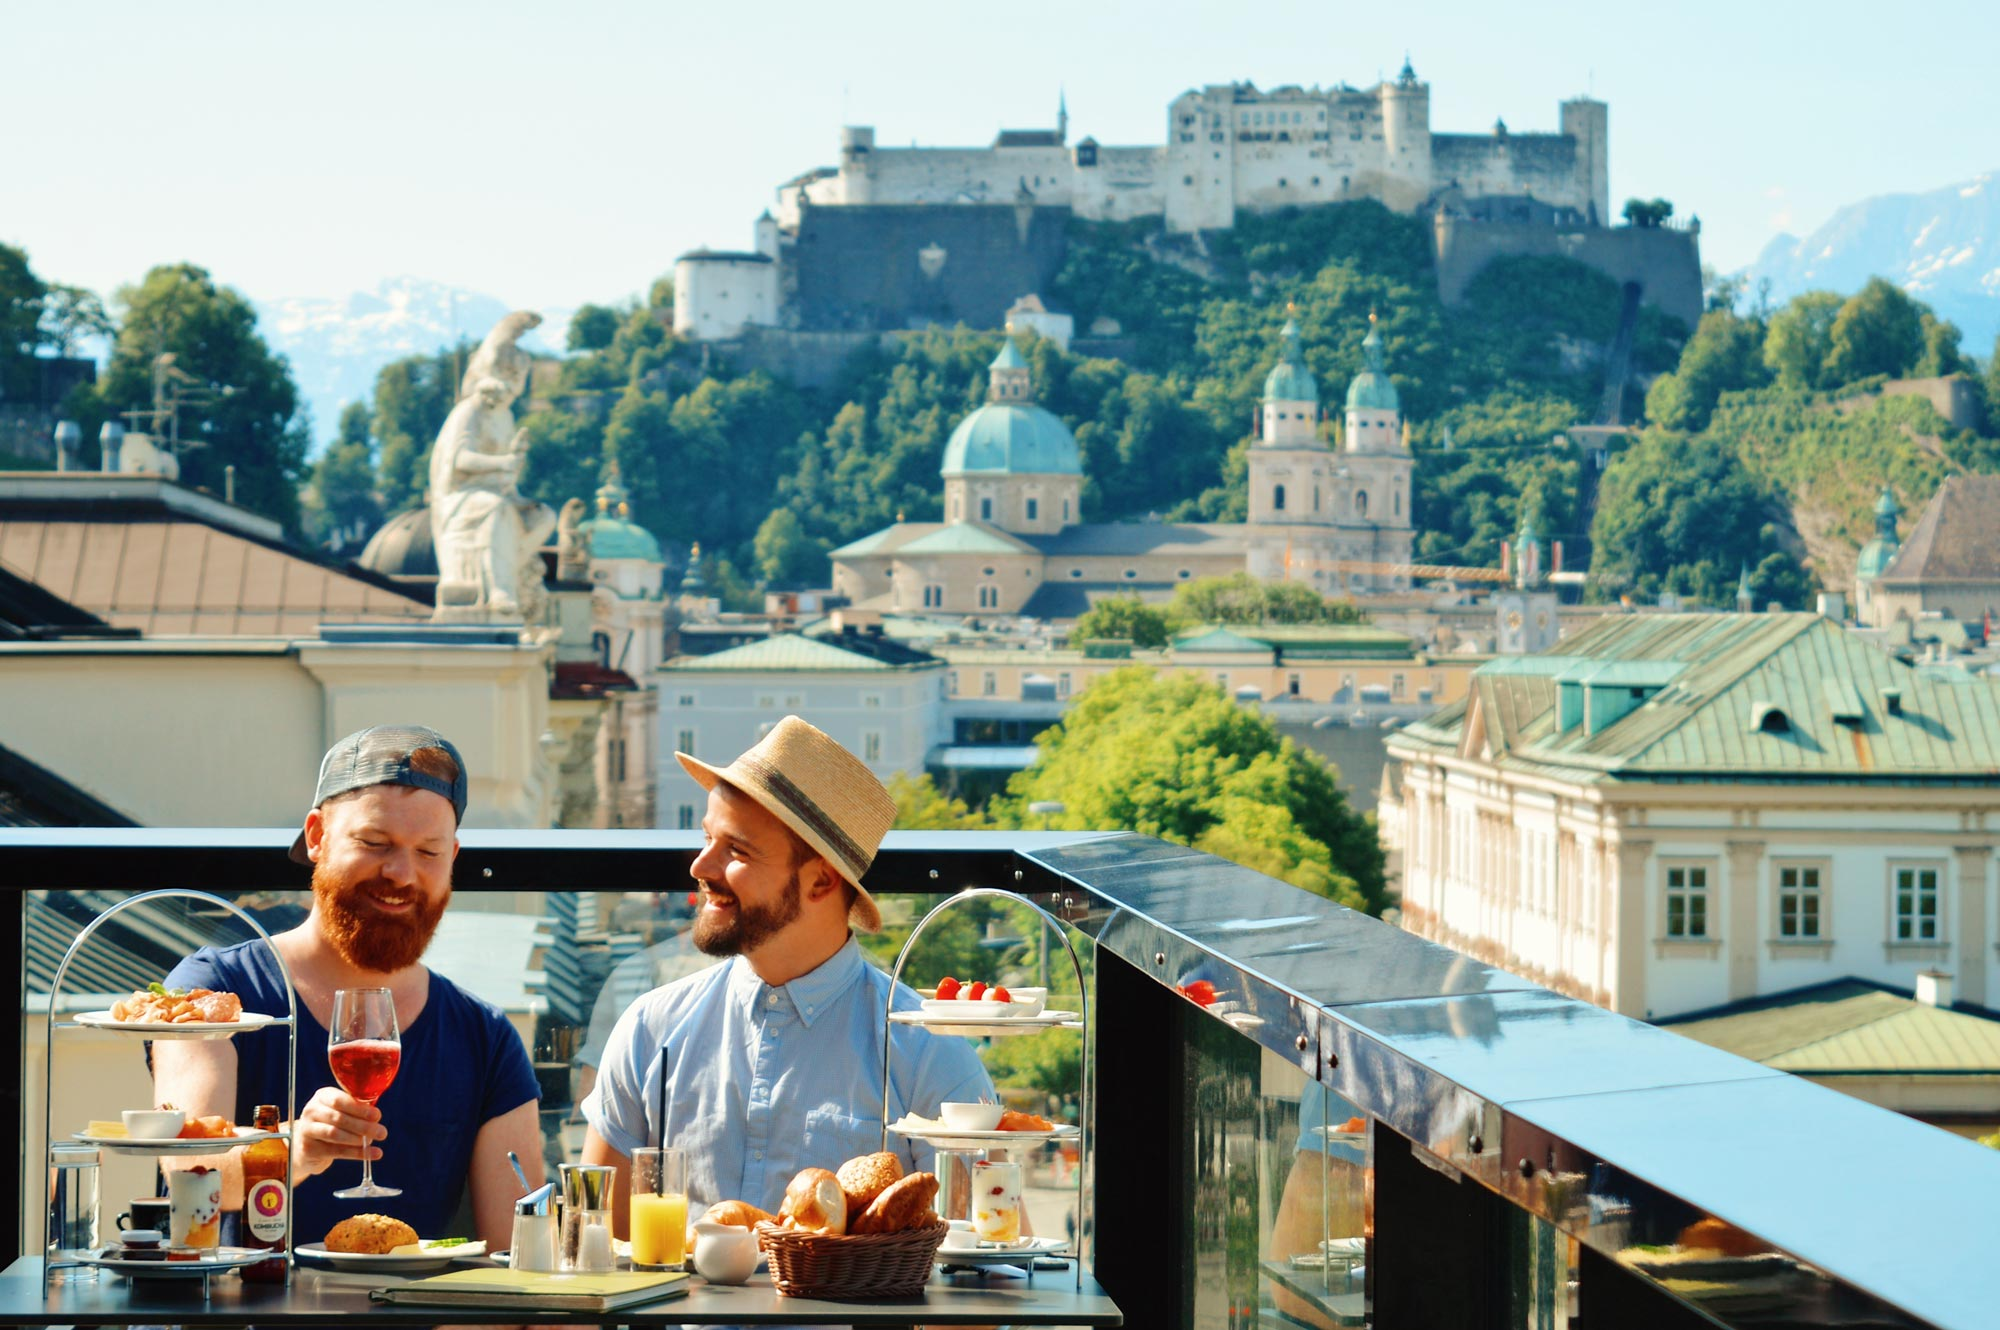 Gay Städtetrip Salzburg Gay Städtetrip Salzburg Salzburg Gay Couple City Trip | All LGBT travelers need to know for a gay-friendly trip to the Mozart city Salzburg in Austria © Coupleofmen.com